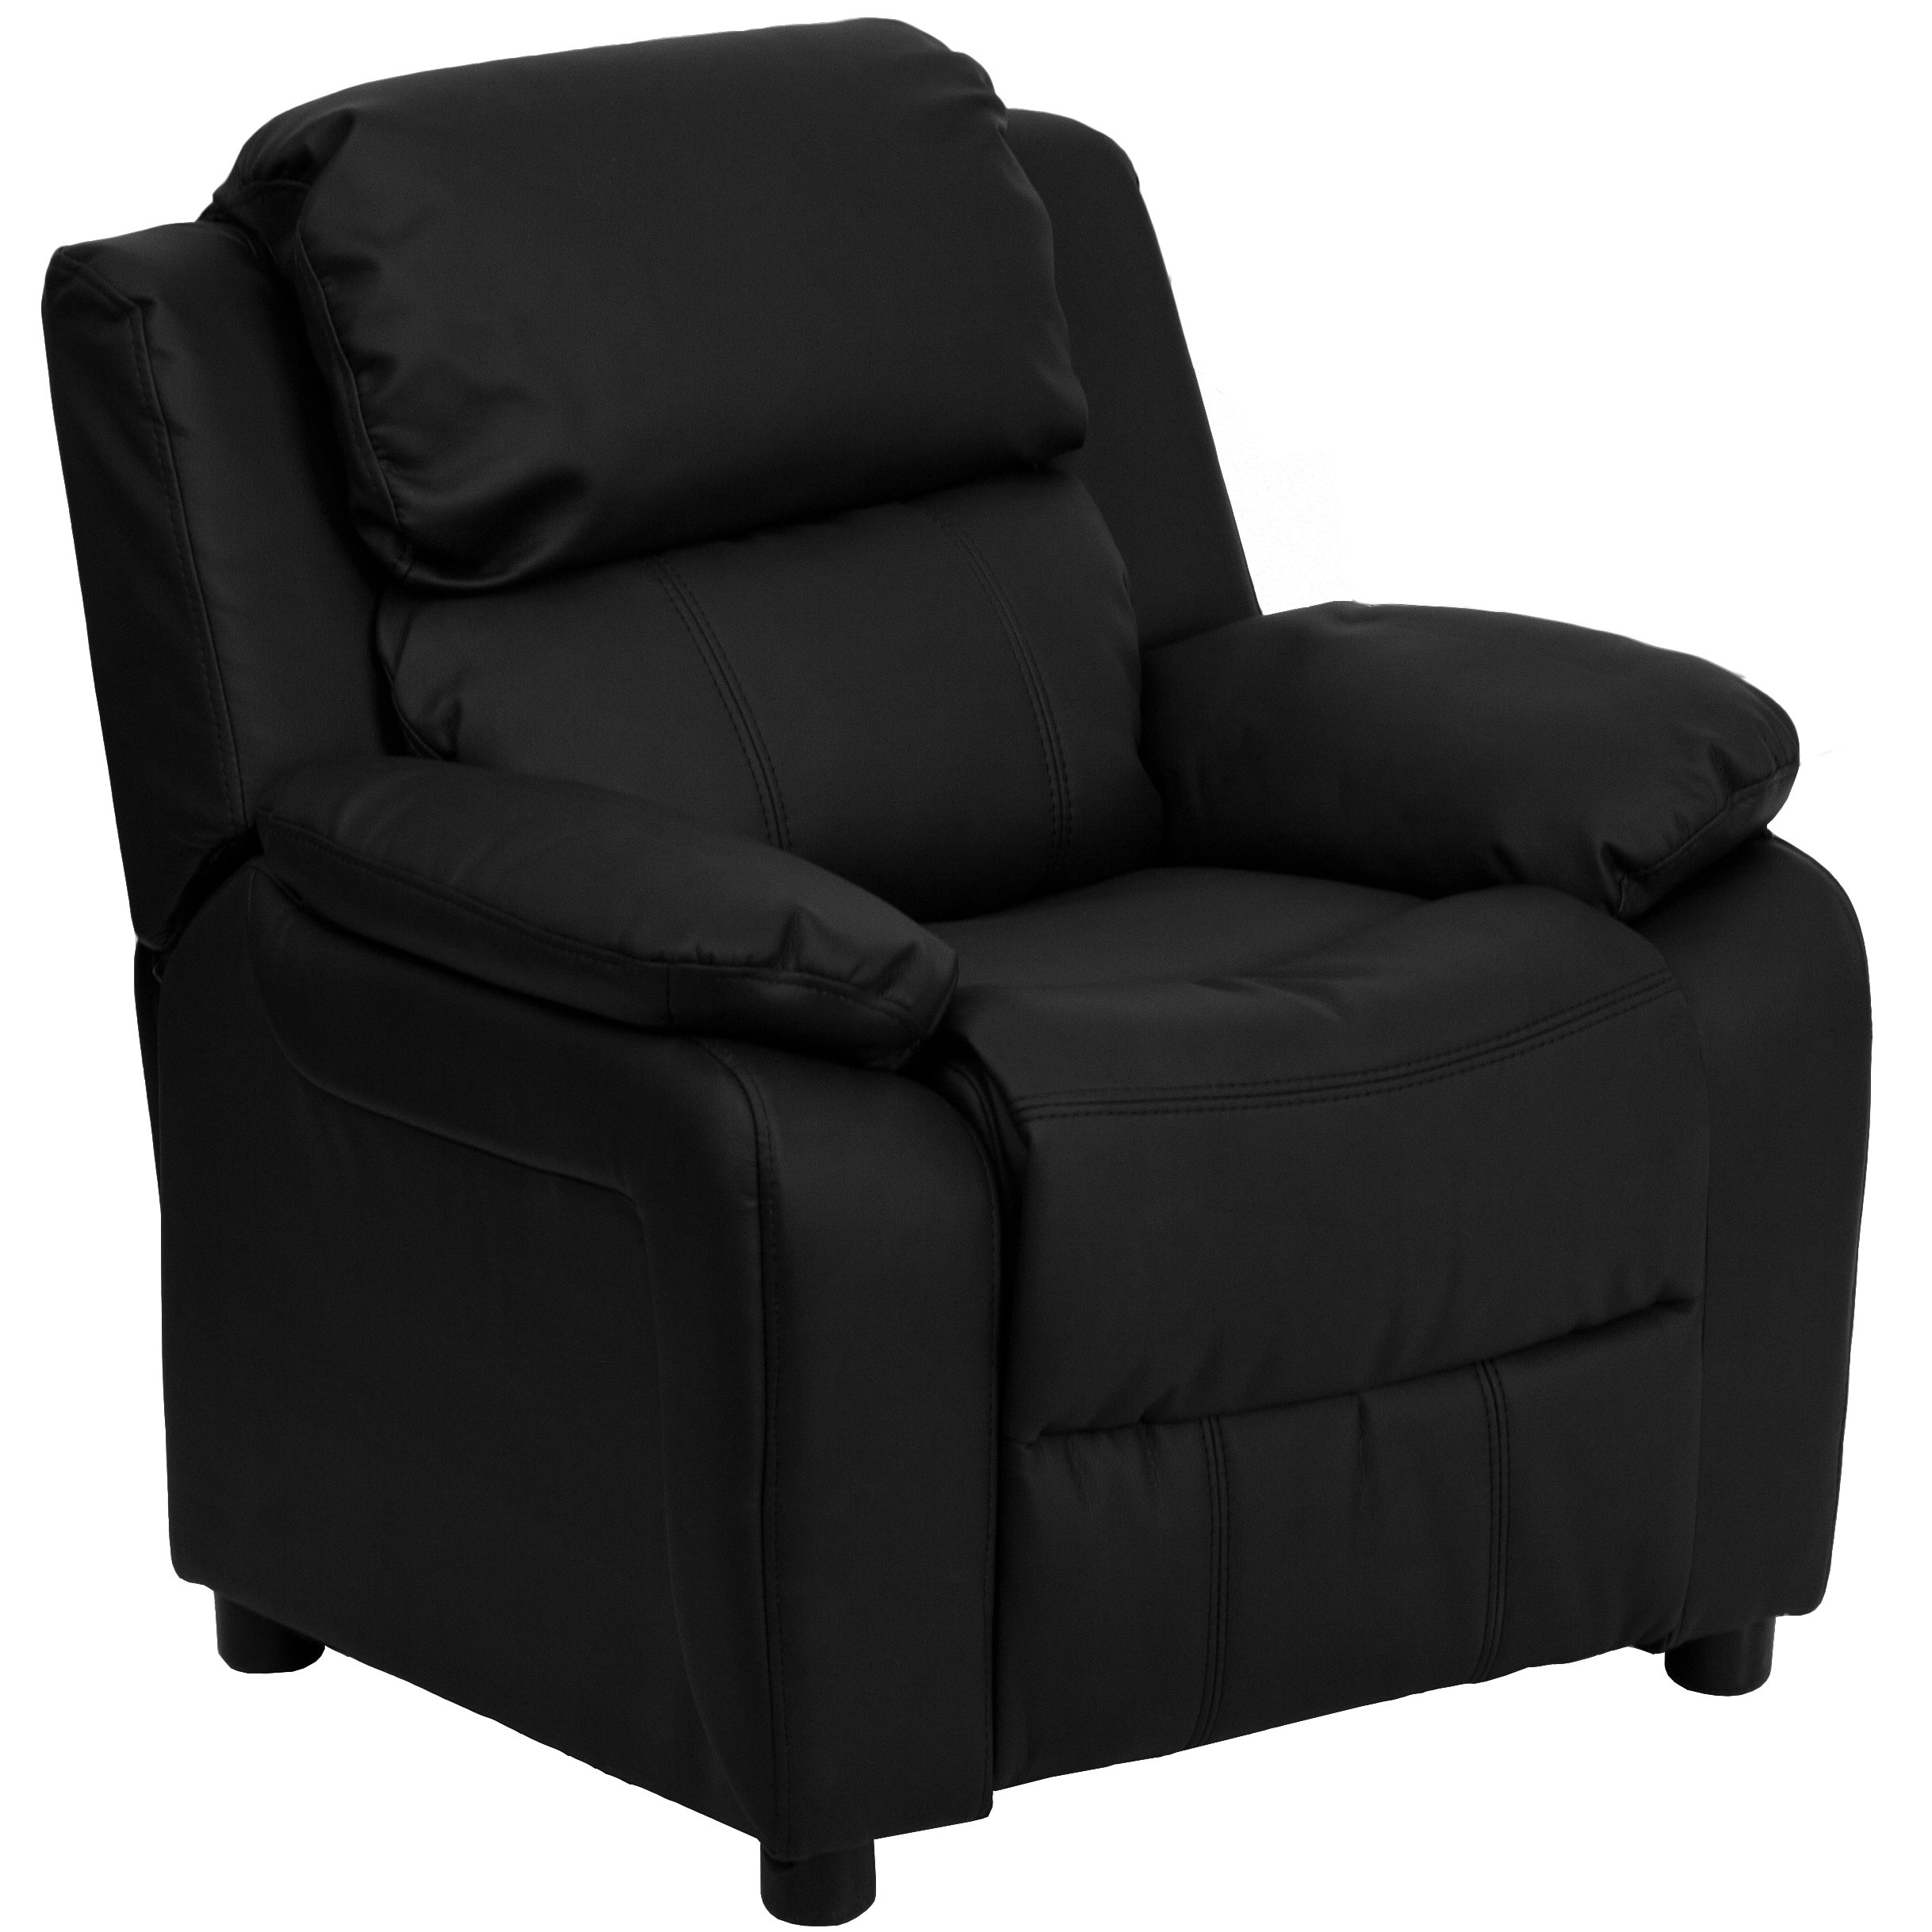 Shop Deluxe Heavily Padded Contemporary Leather Kidu0027s Recliner With Storage  Arms   Free Shipping Today   Overstock.com   6702518